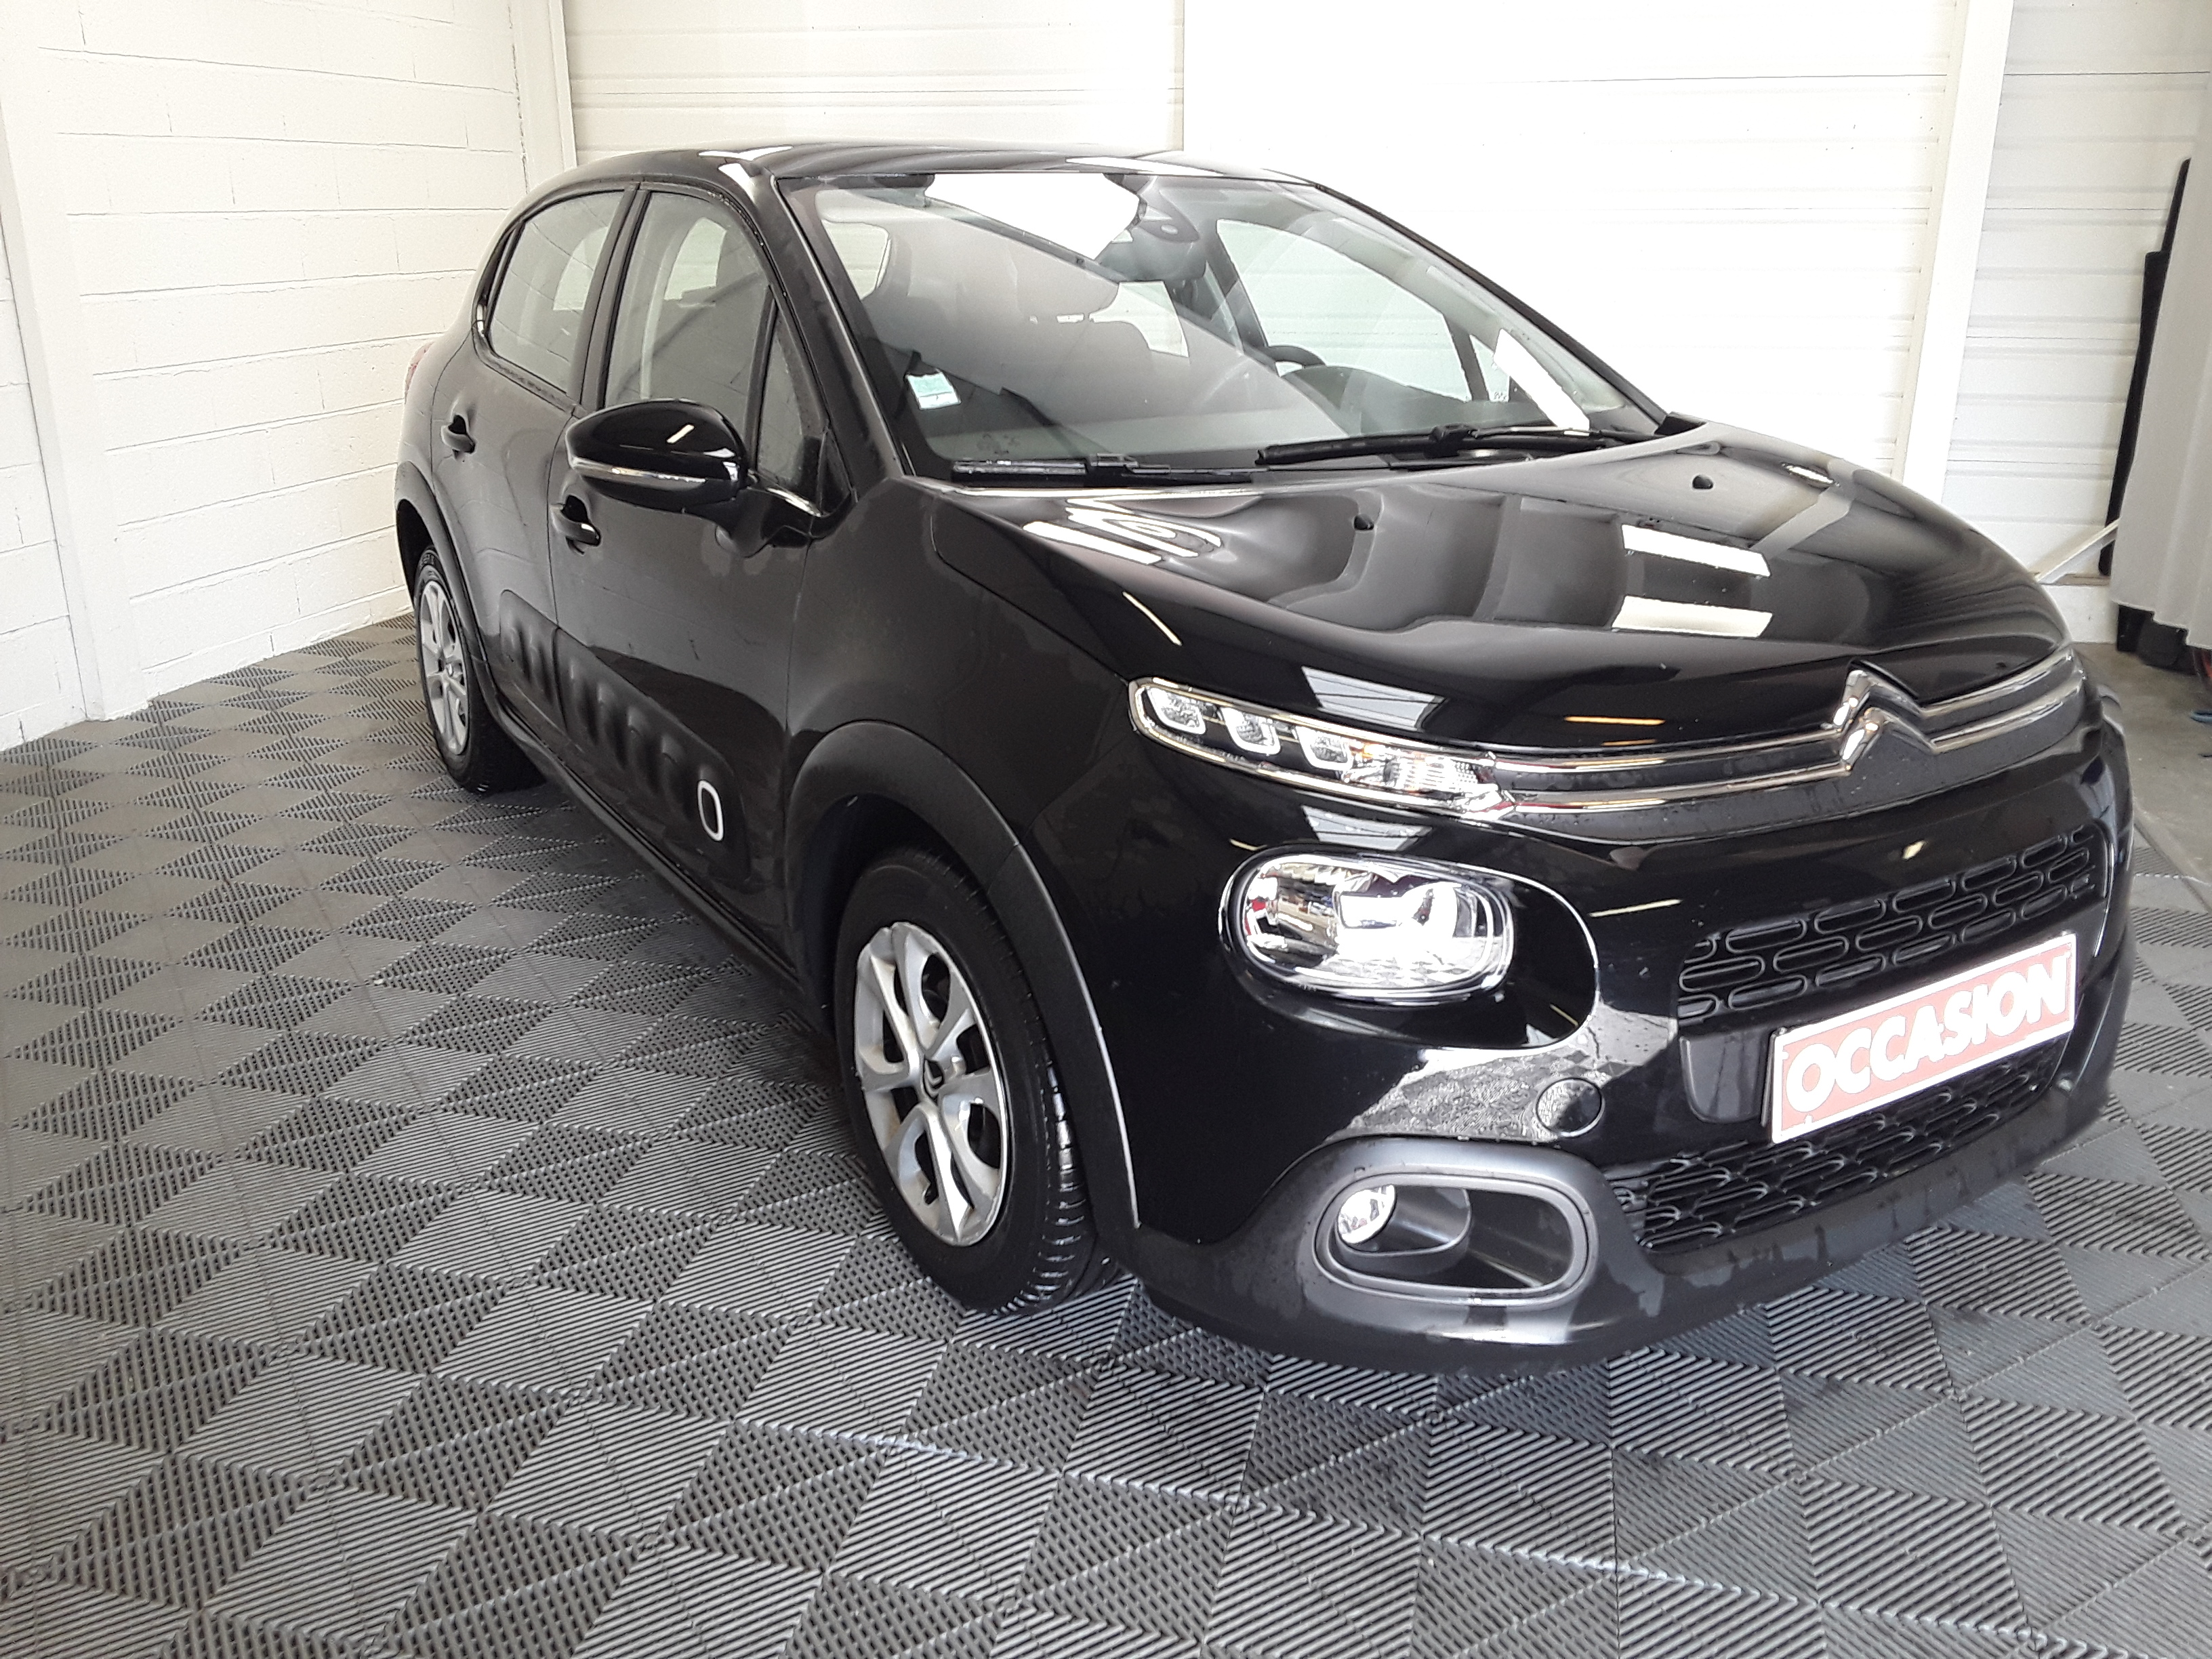 CITROEN C3 BUSINESS 2017 à 9900 € - Photo n°3